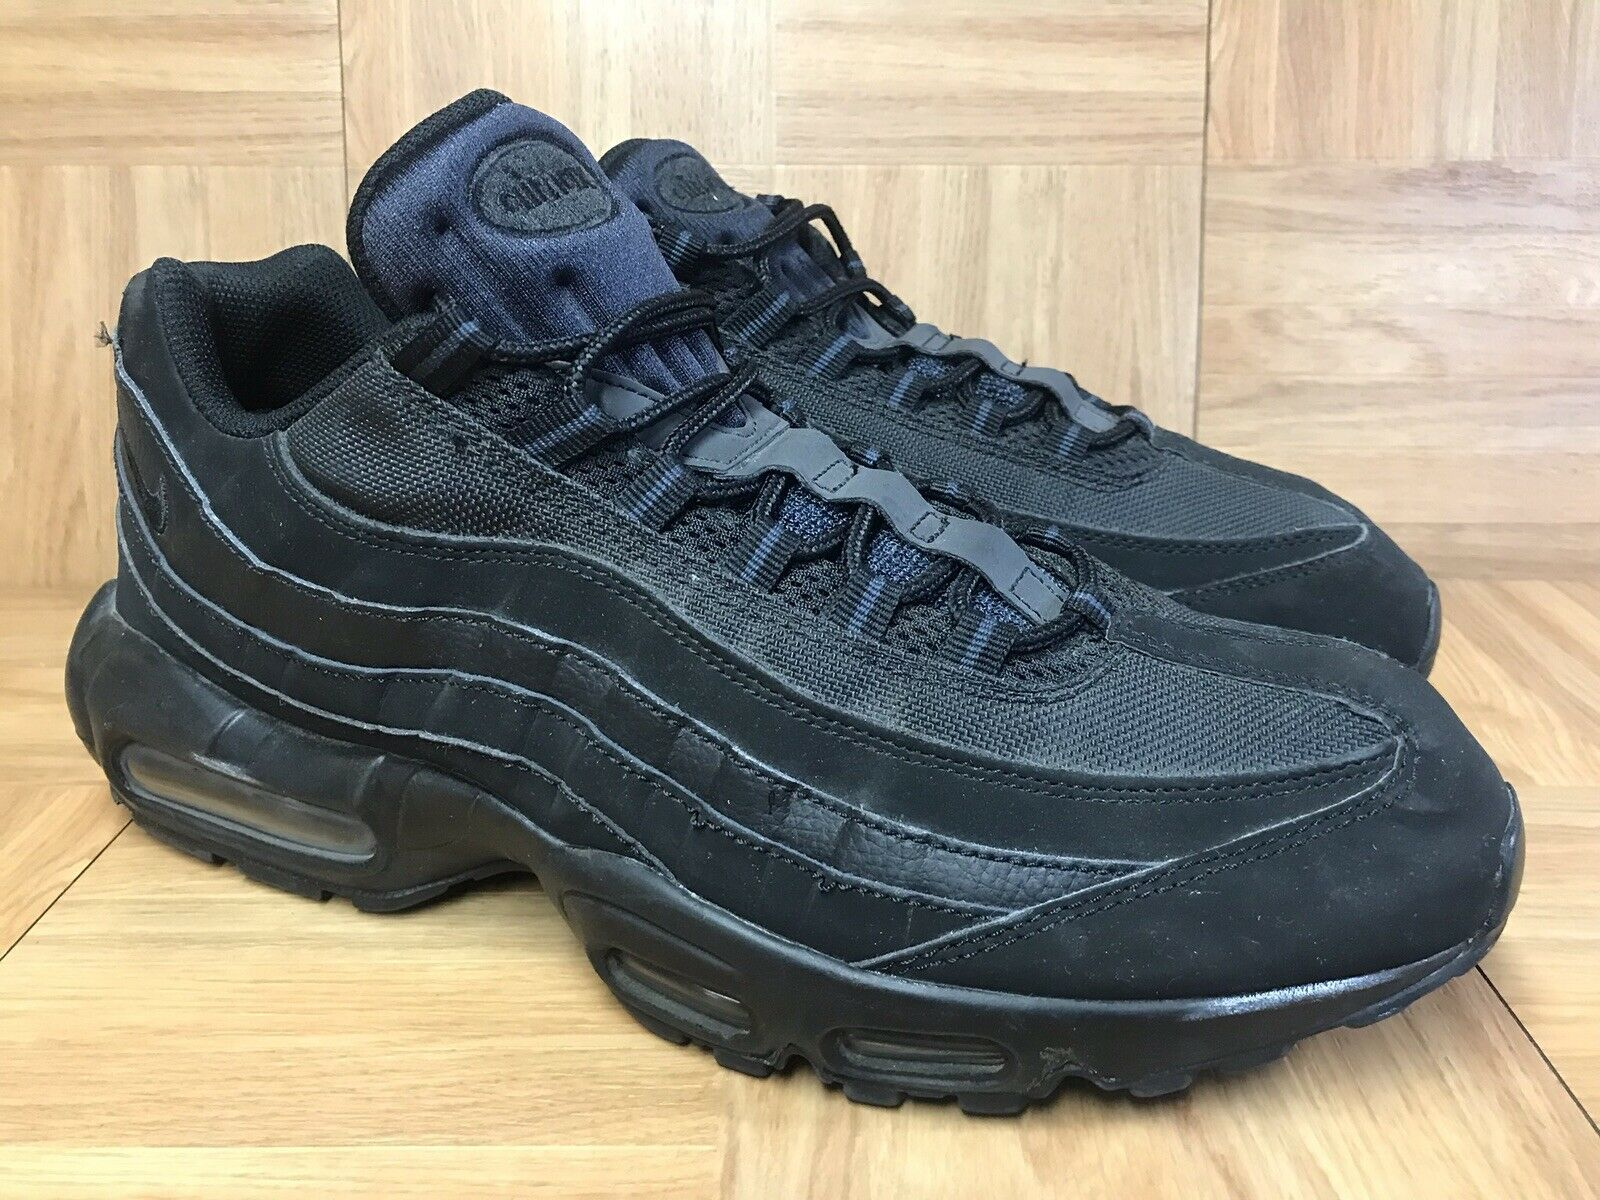 RARE Nike Air Max '95 Black Anthracite Blackout Sz 13 609048-092 Running shoes